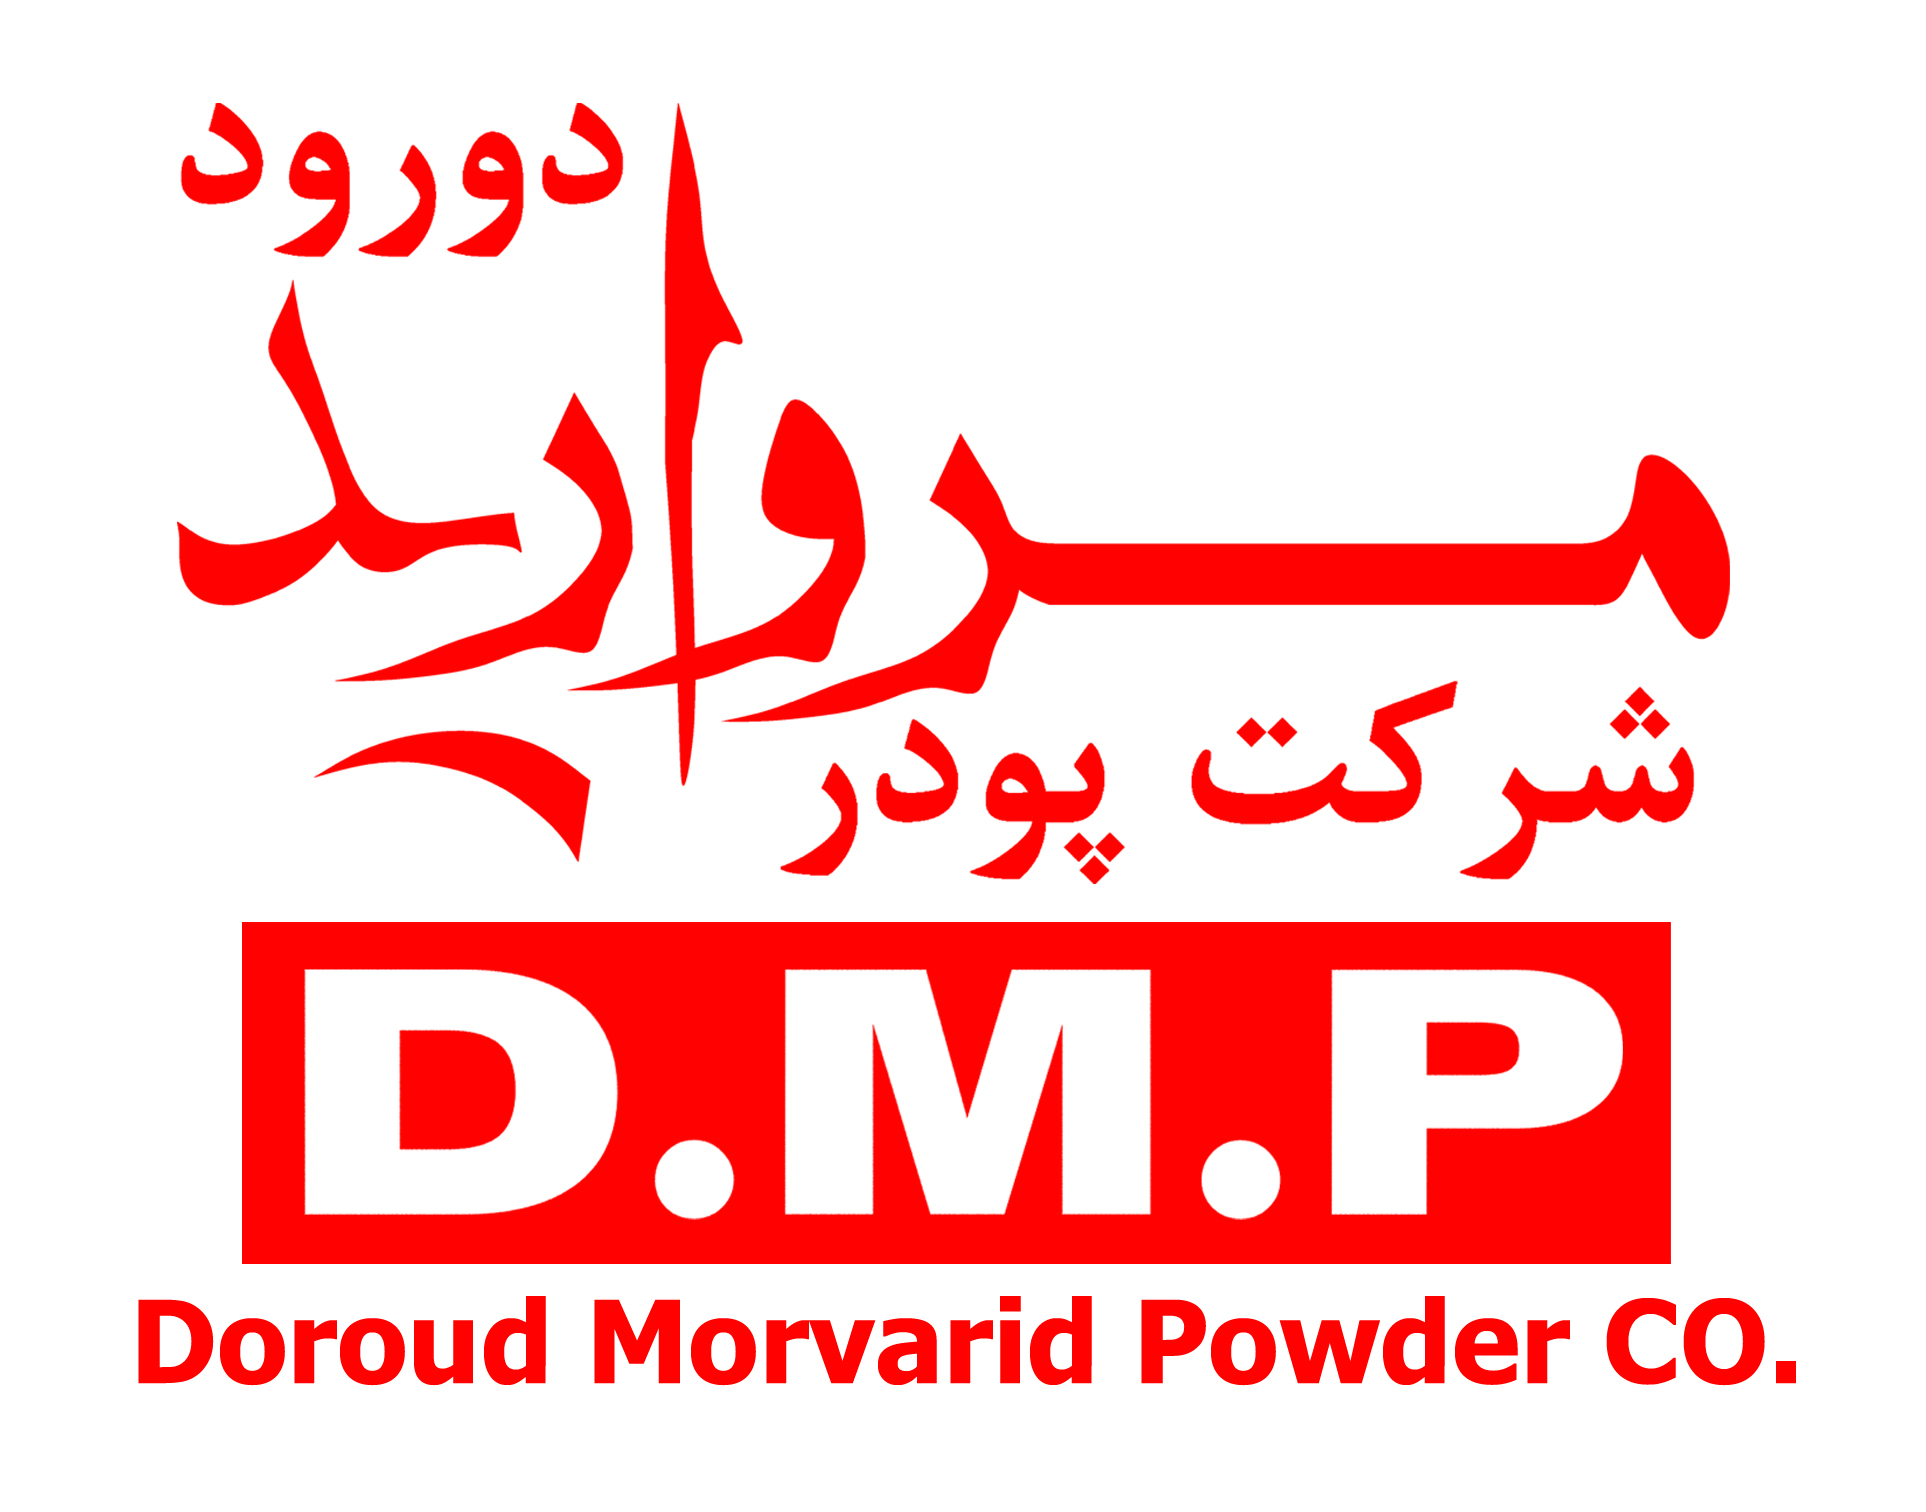 Doroud Morvarid Powder